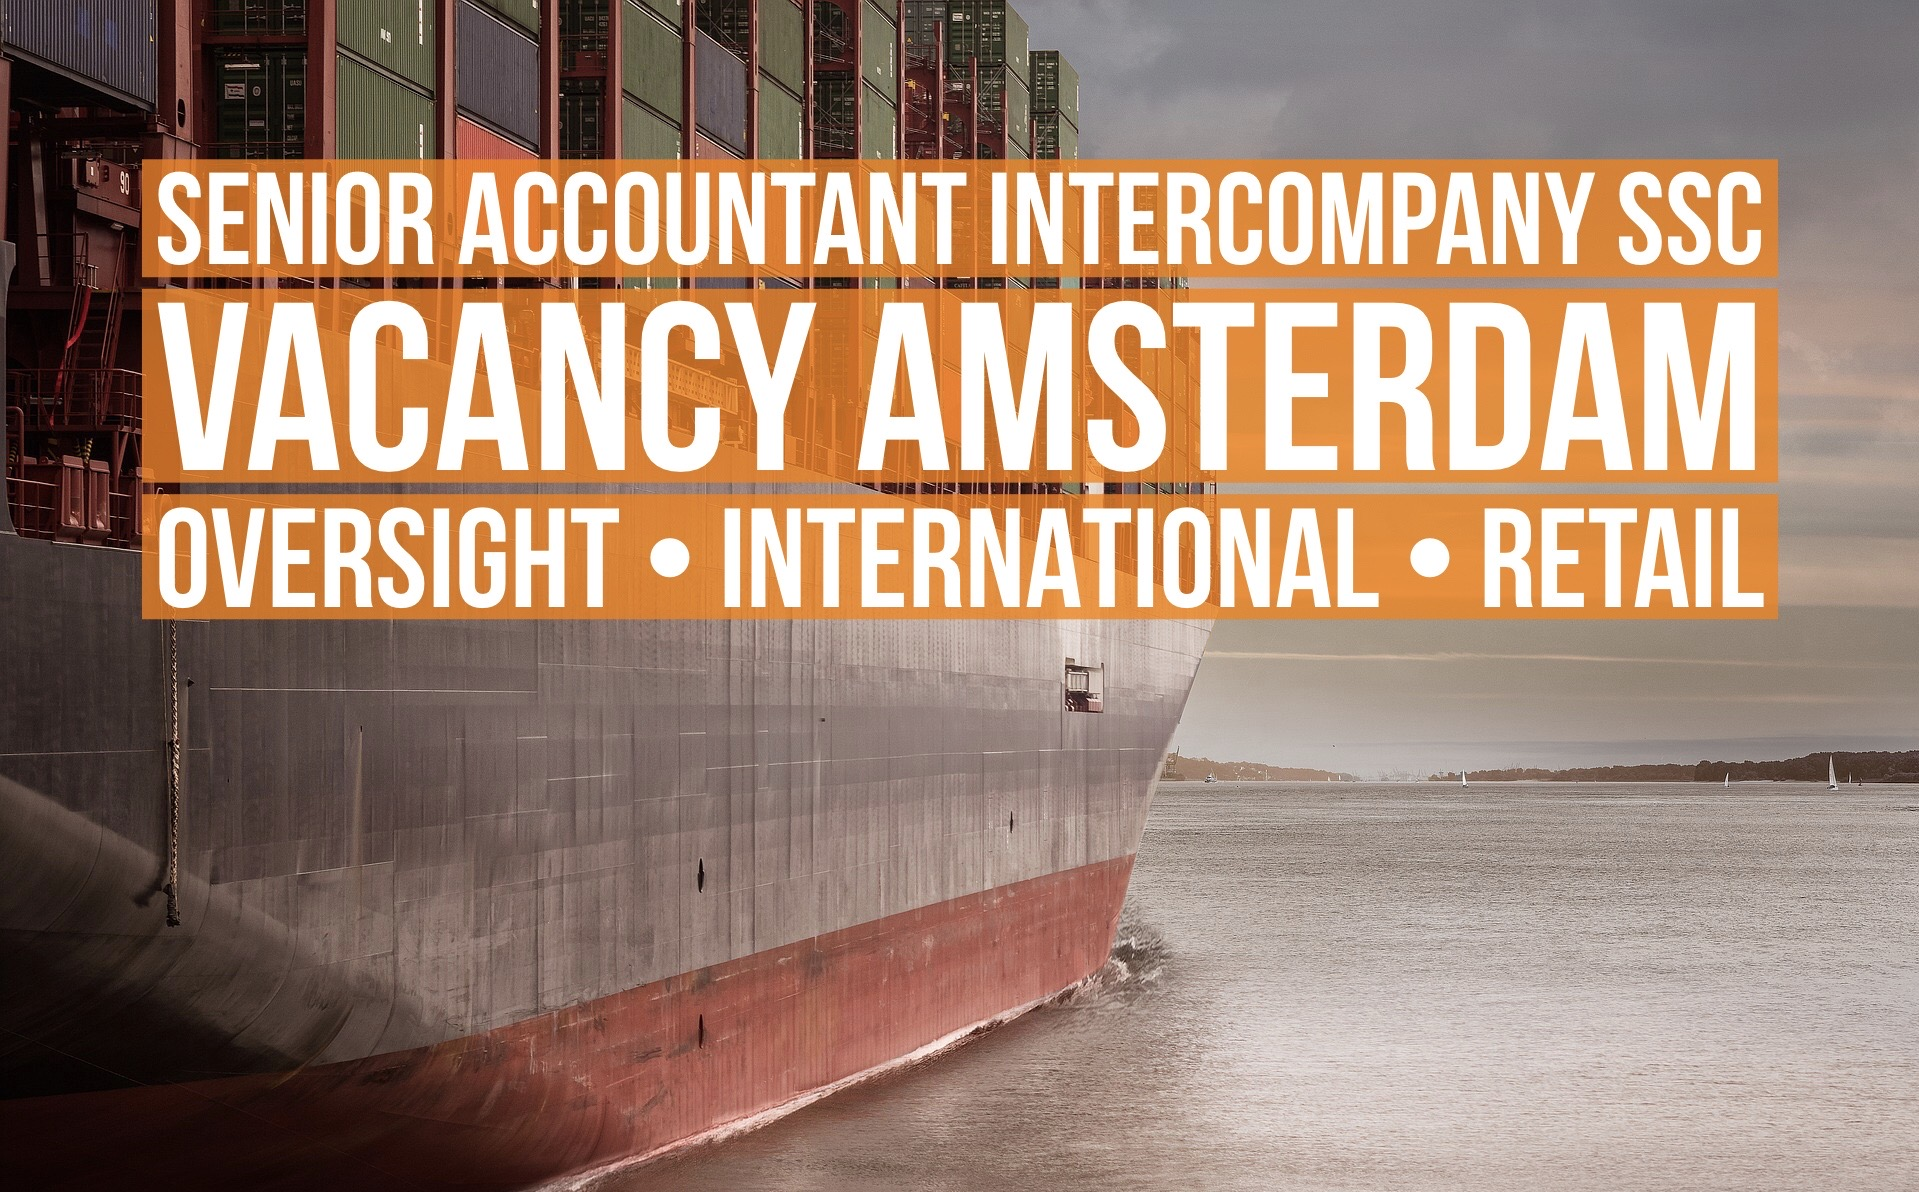 senior accountant intercompany ssc vacancy amsterdam